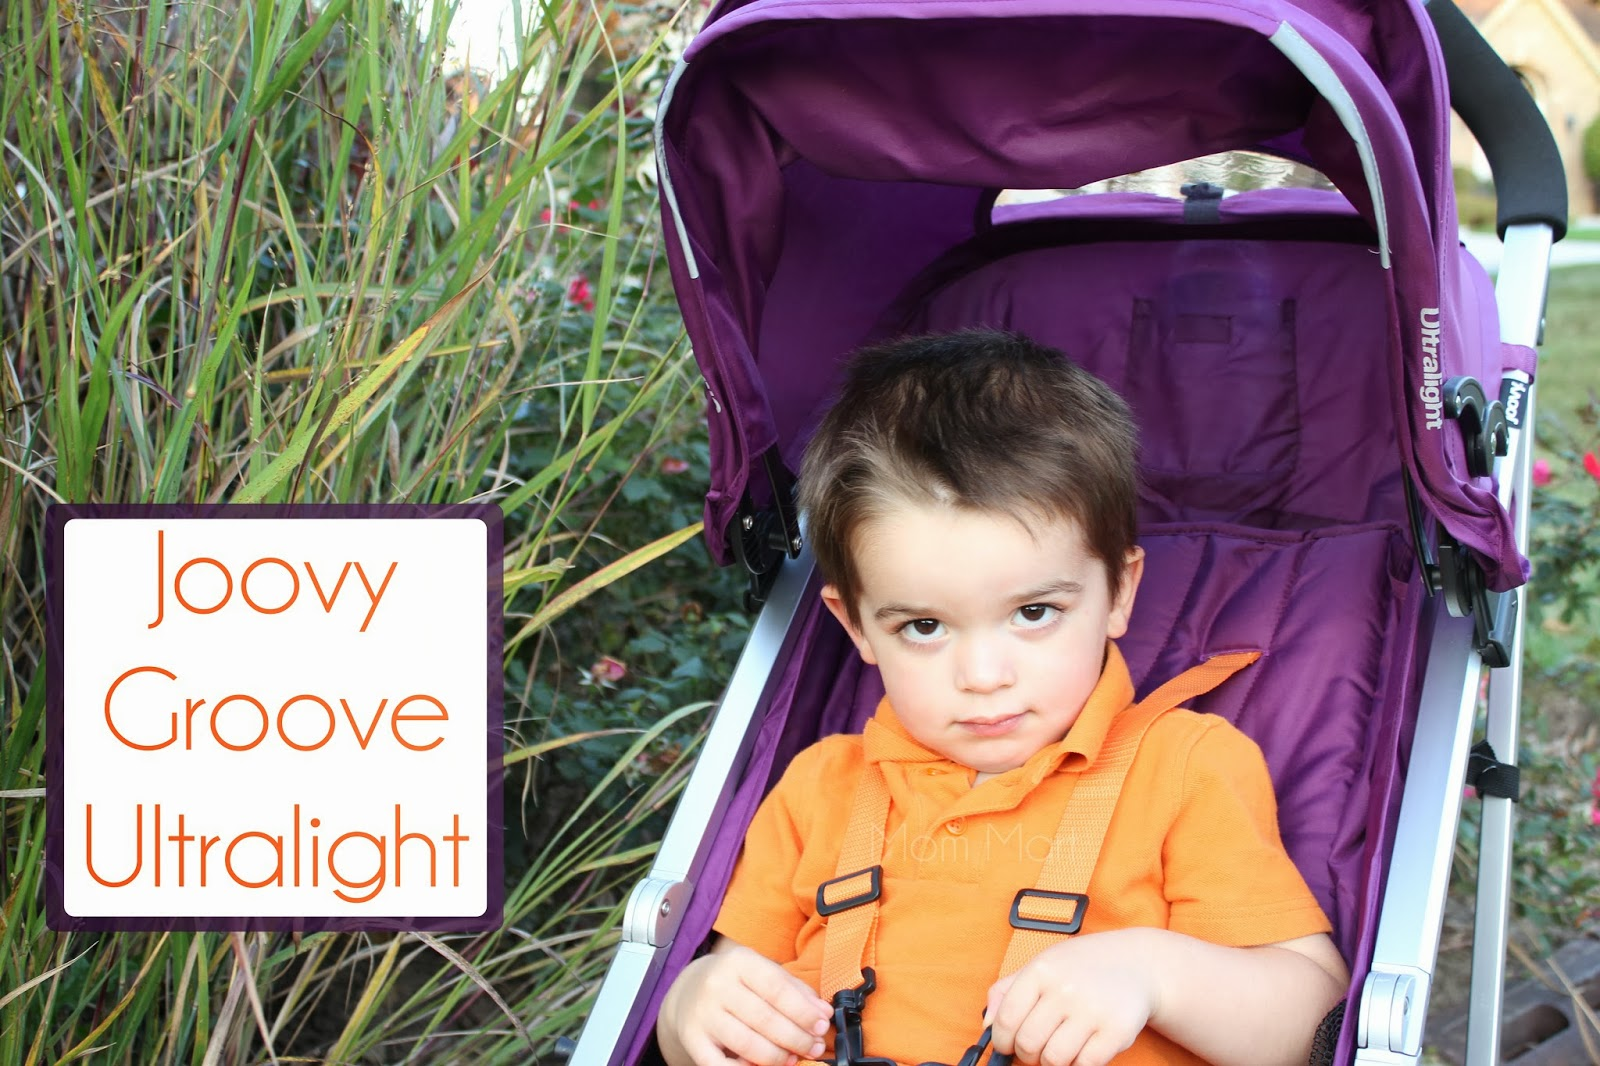 Mom Mart The Joovy Groove Ultralight Is A Perfect Lightweight